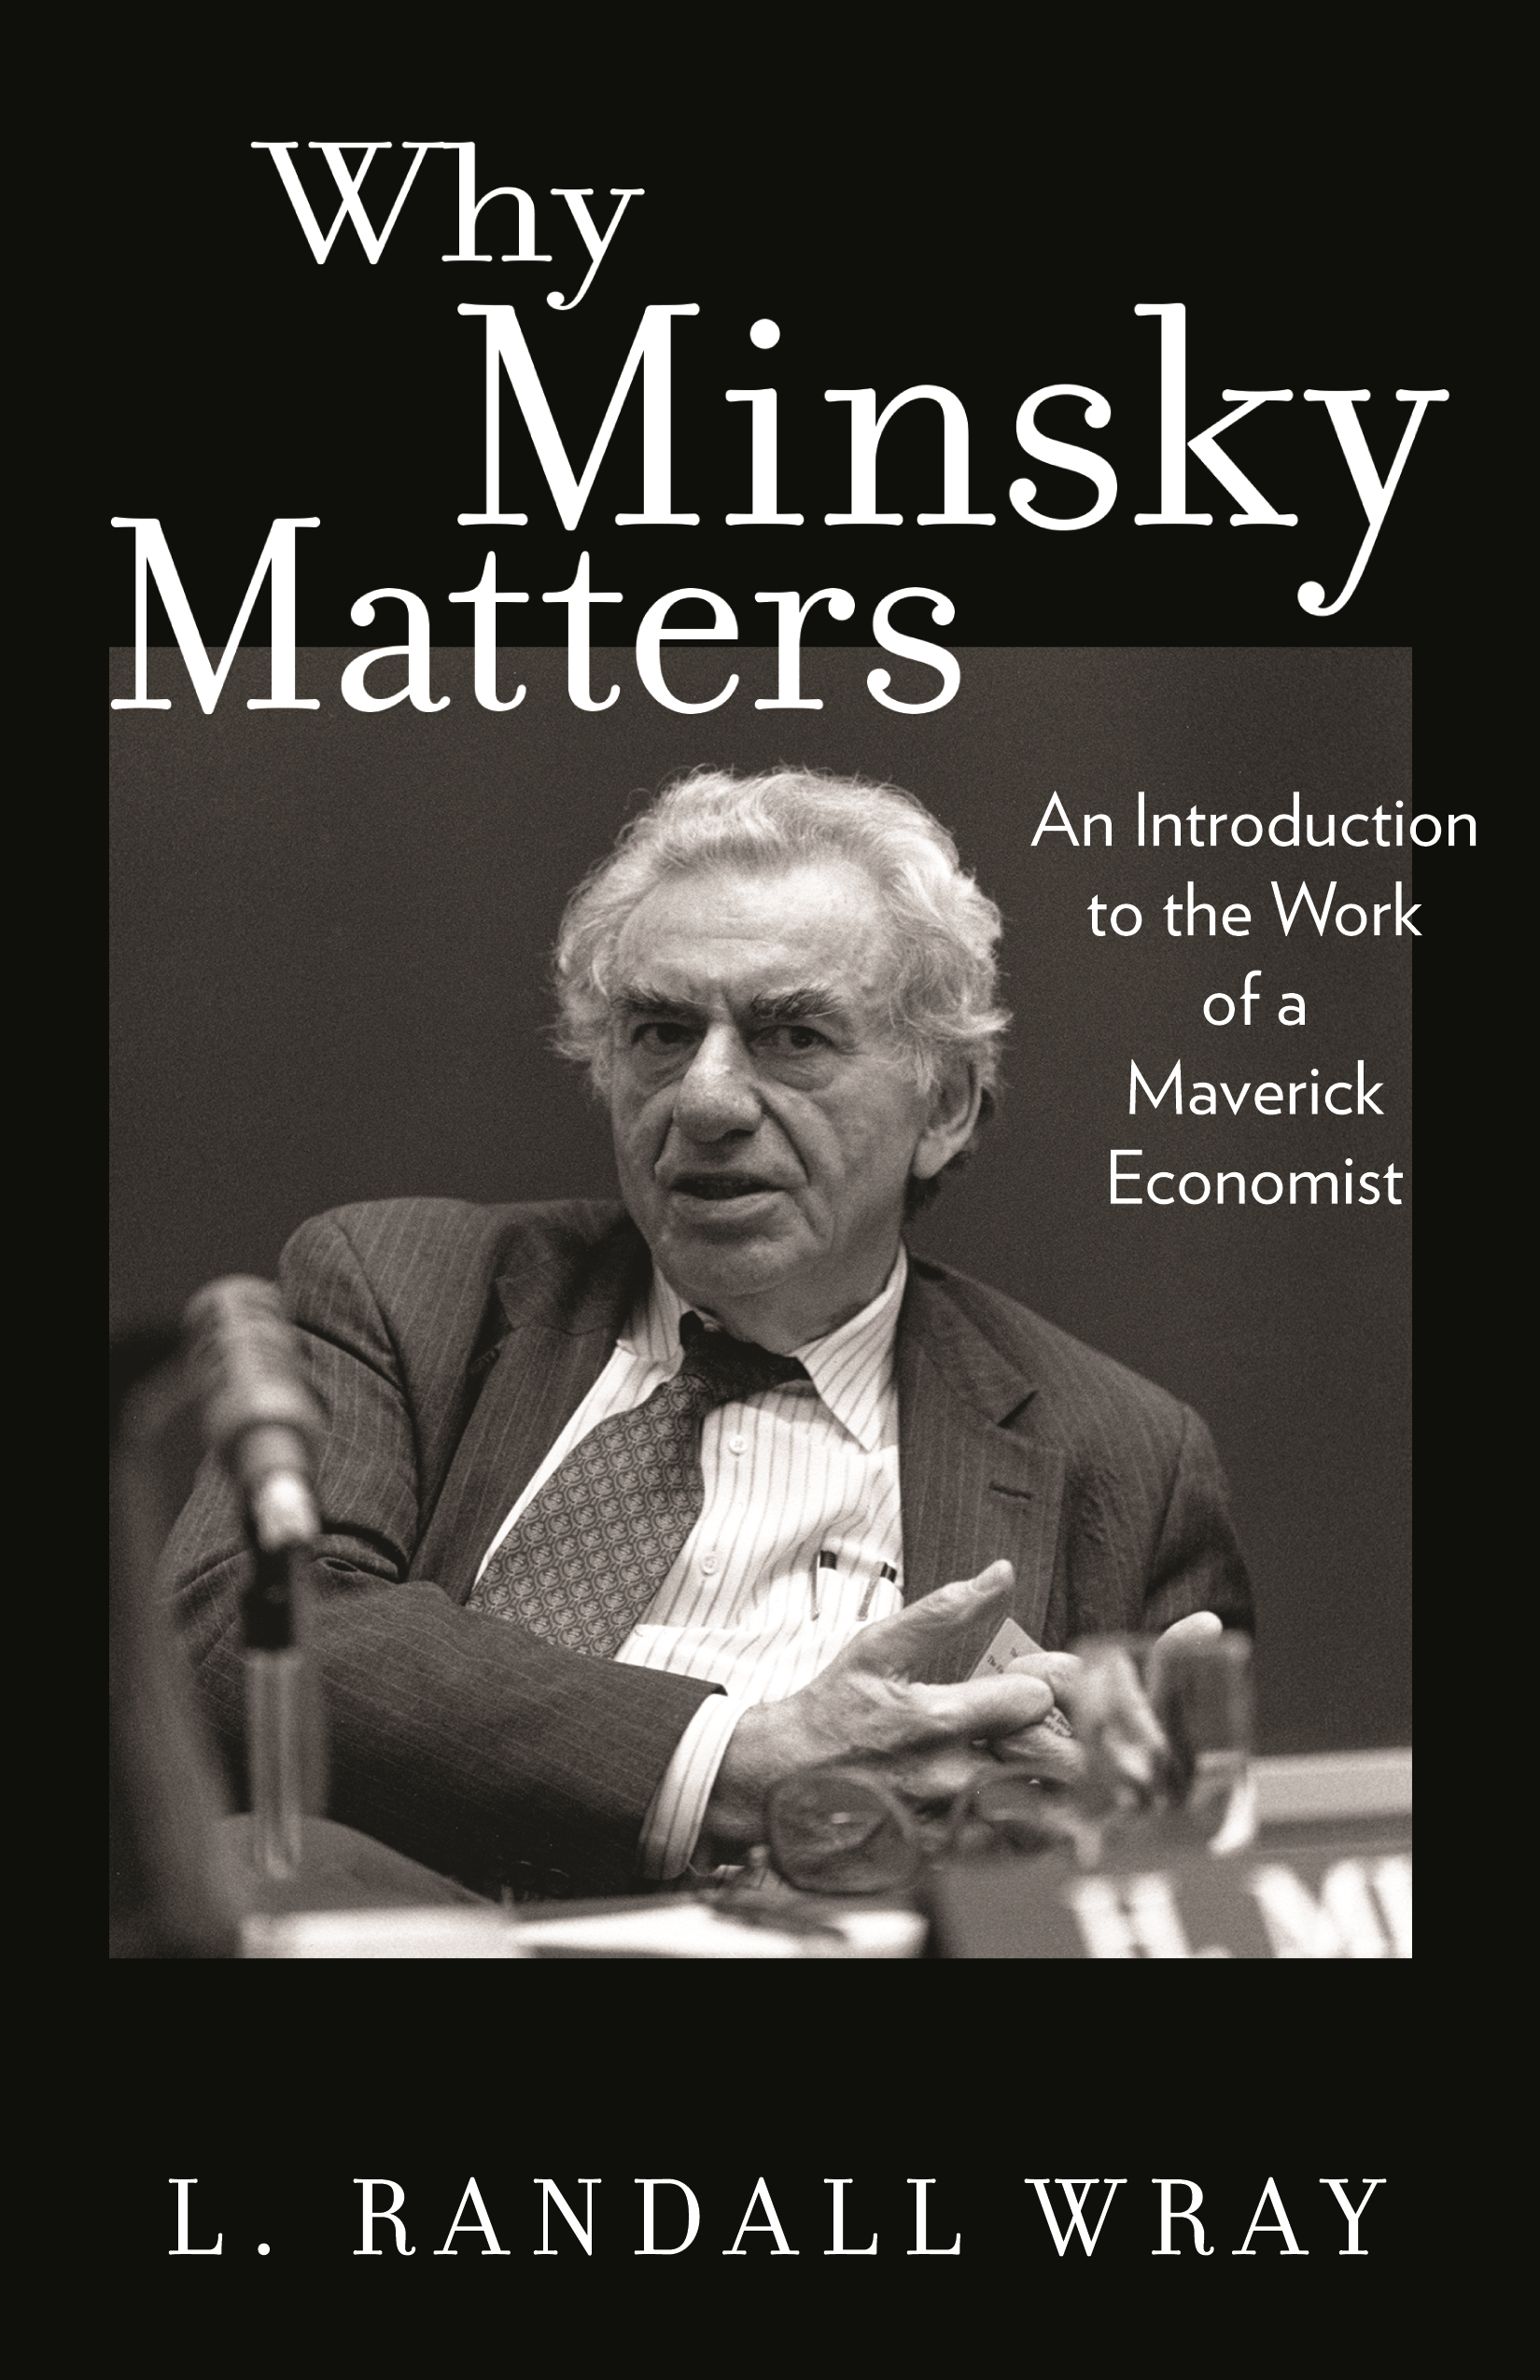 Download Ebook Why Minsky Matters by L. Randall Wray Pdf